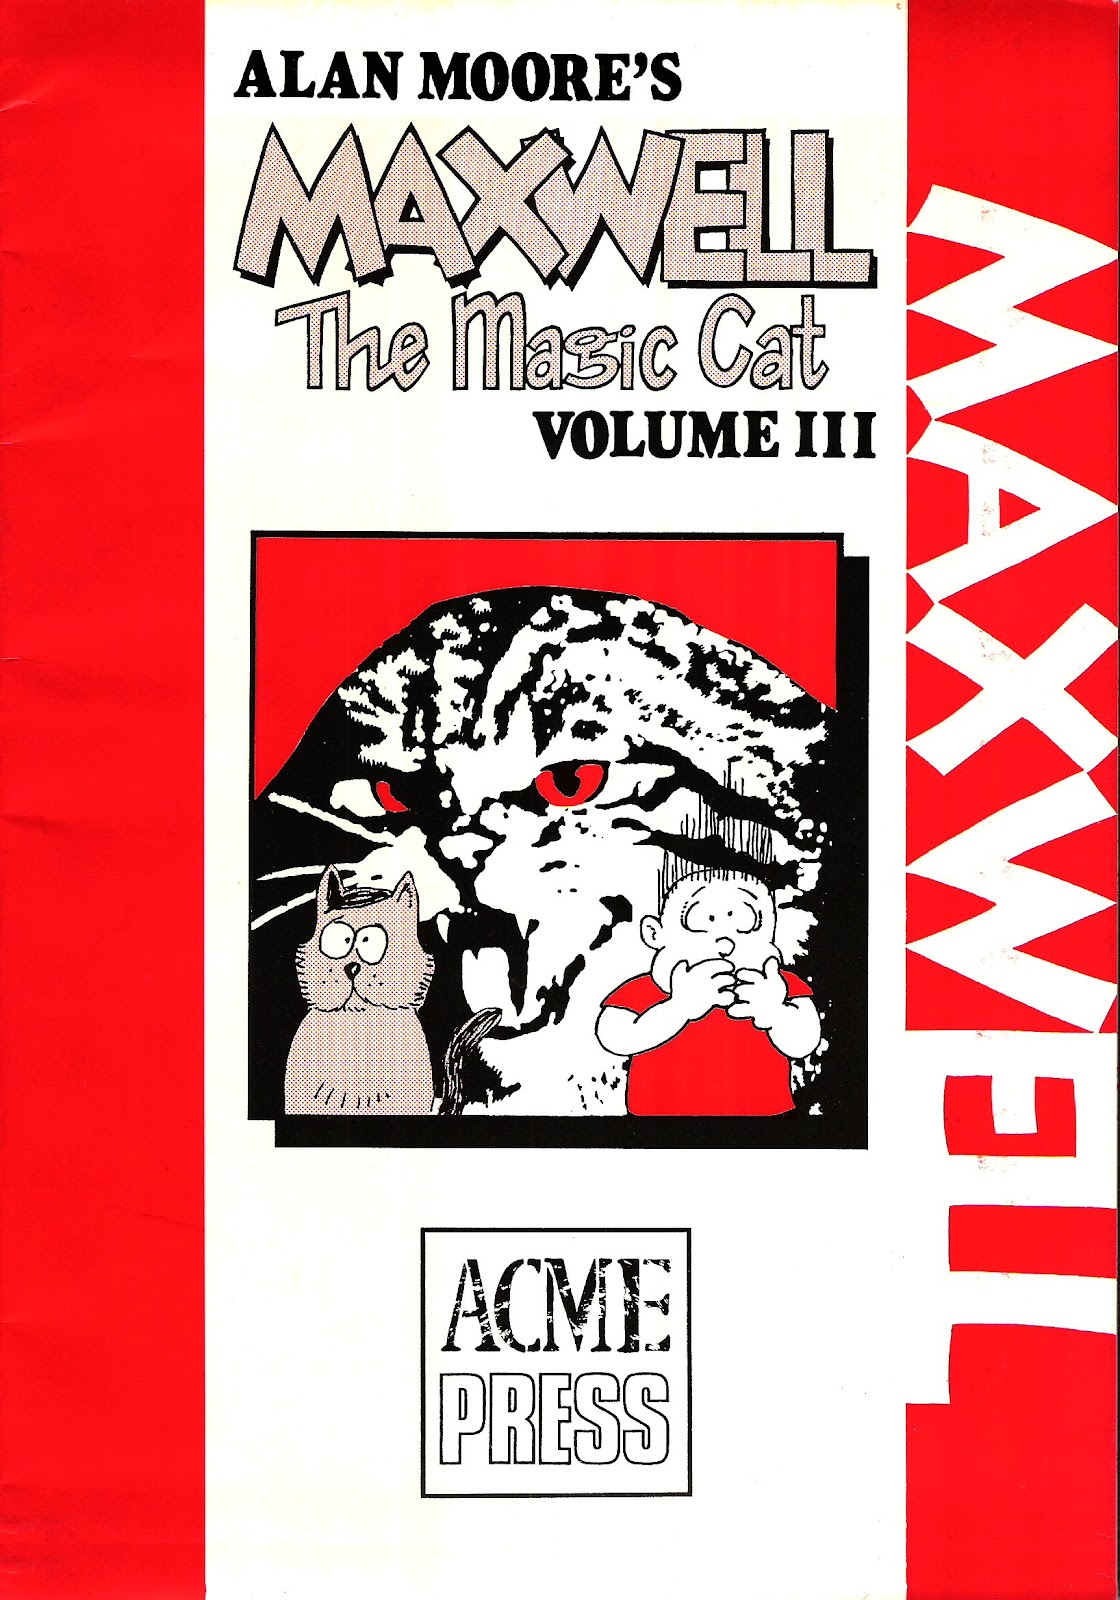 Read online Alan Moore's Maxwell the Magic Cat comic -  Issue #3 - 1